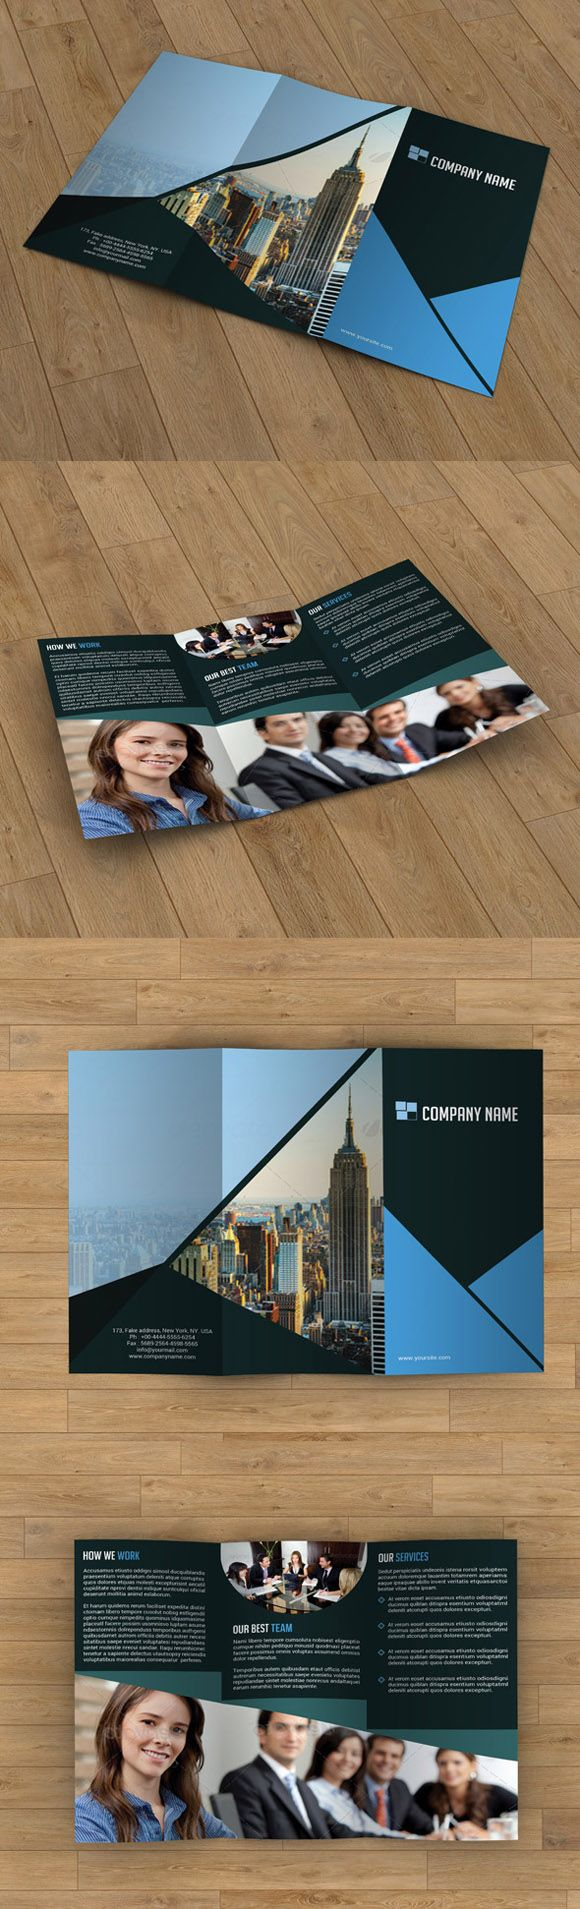 Tri-fold brochure by Template Shop on Creative Market